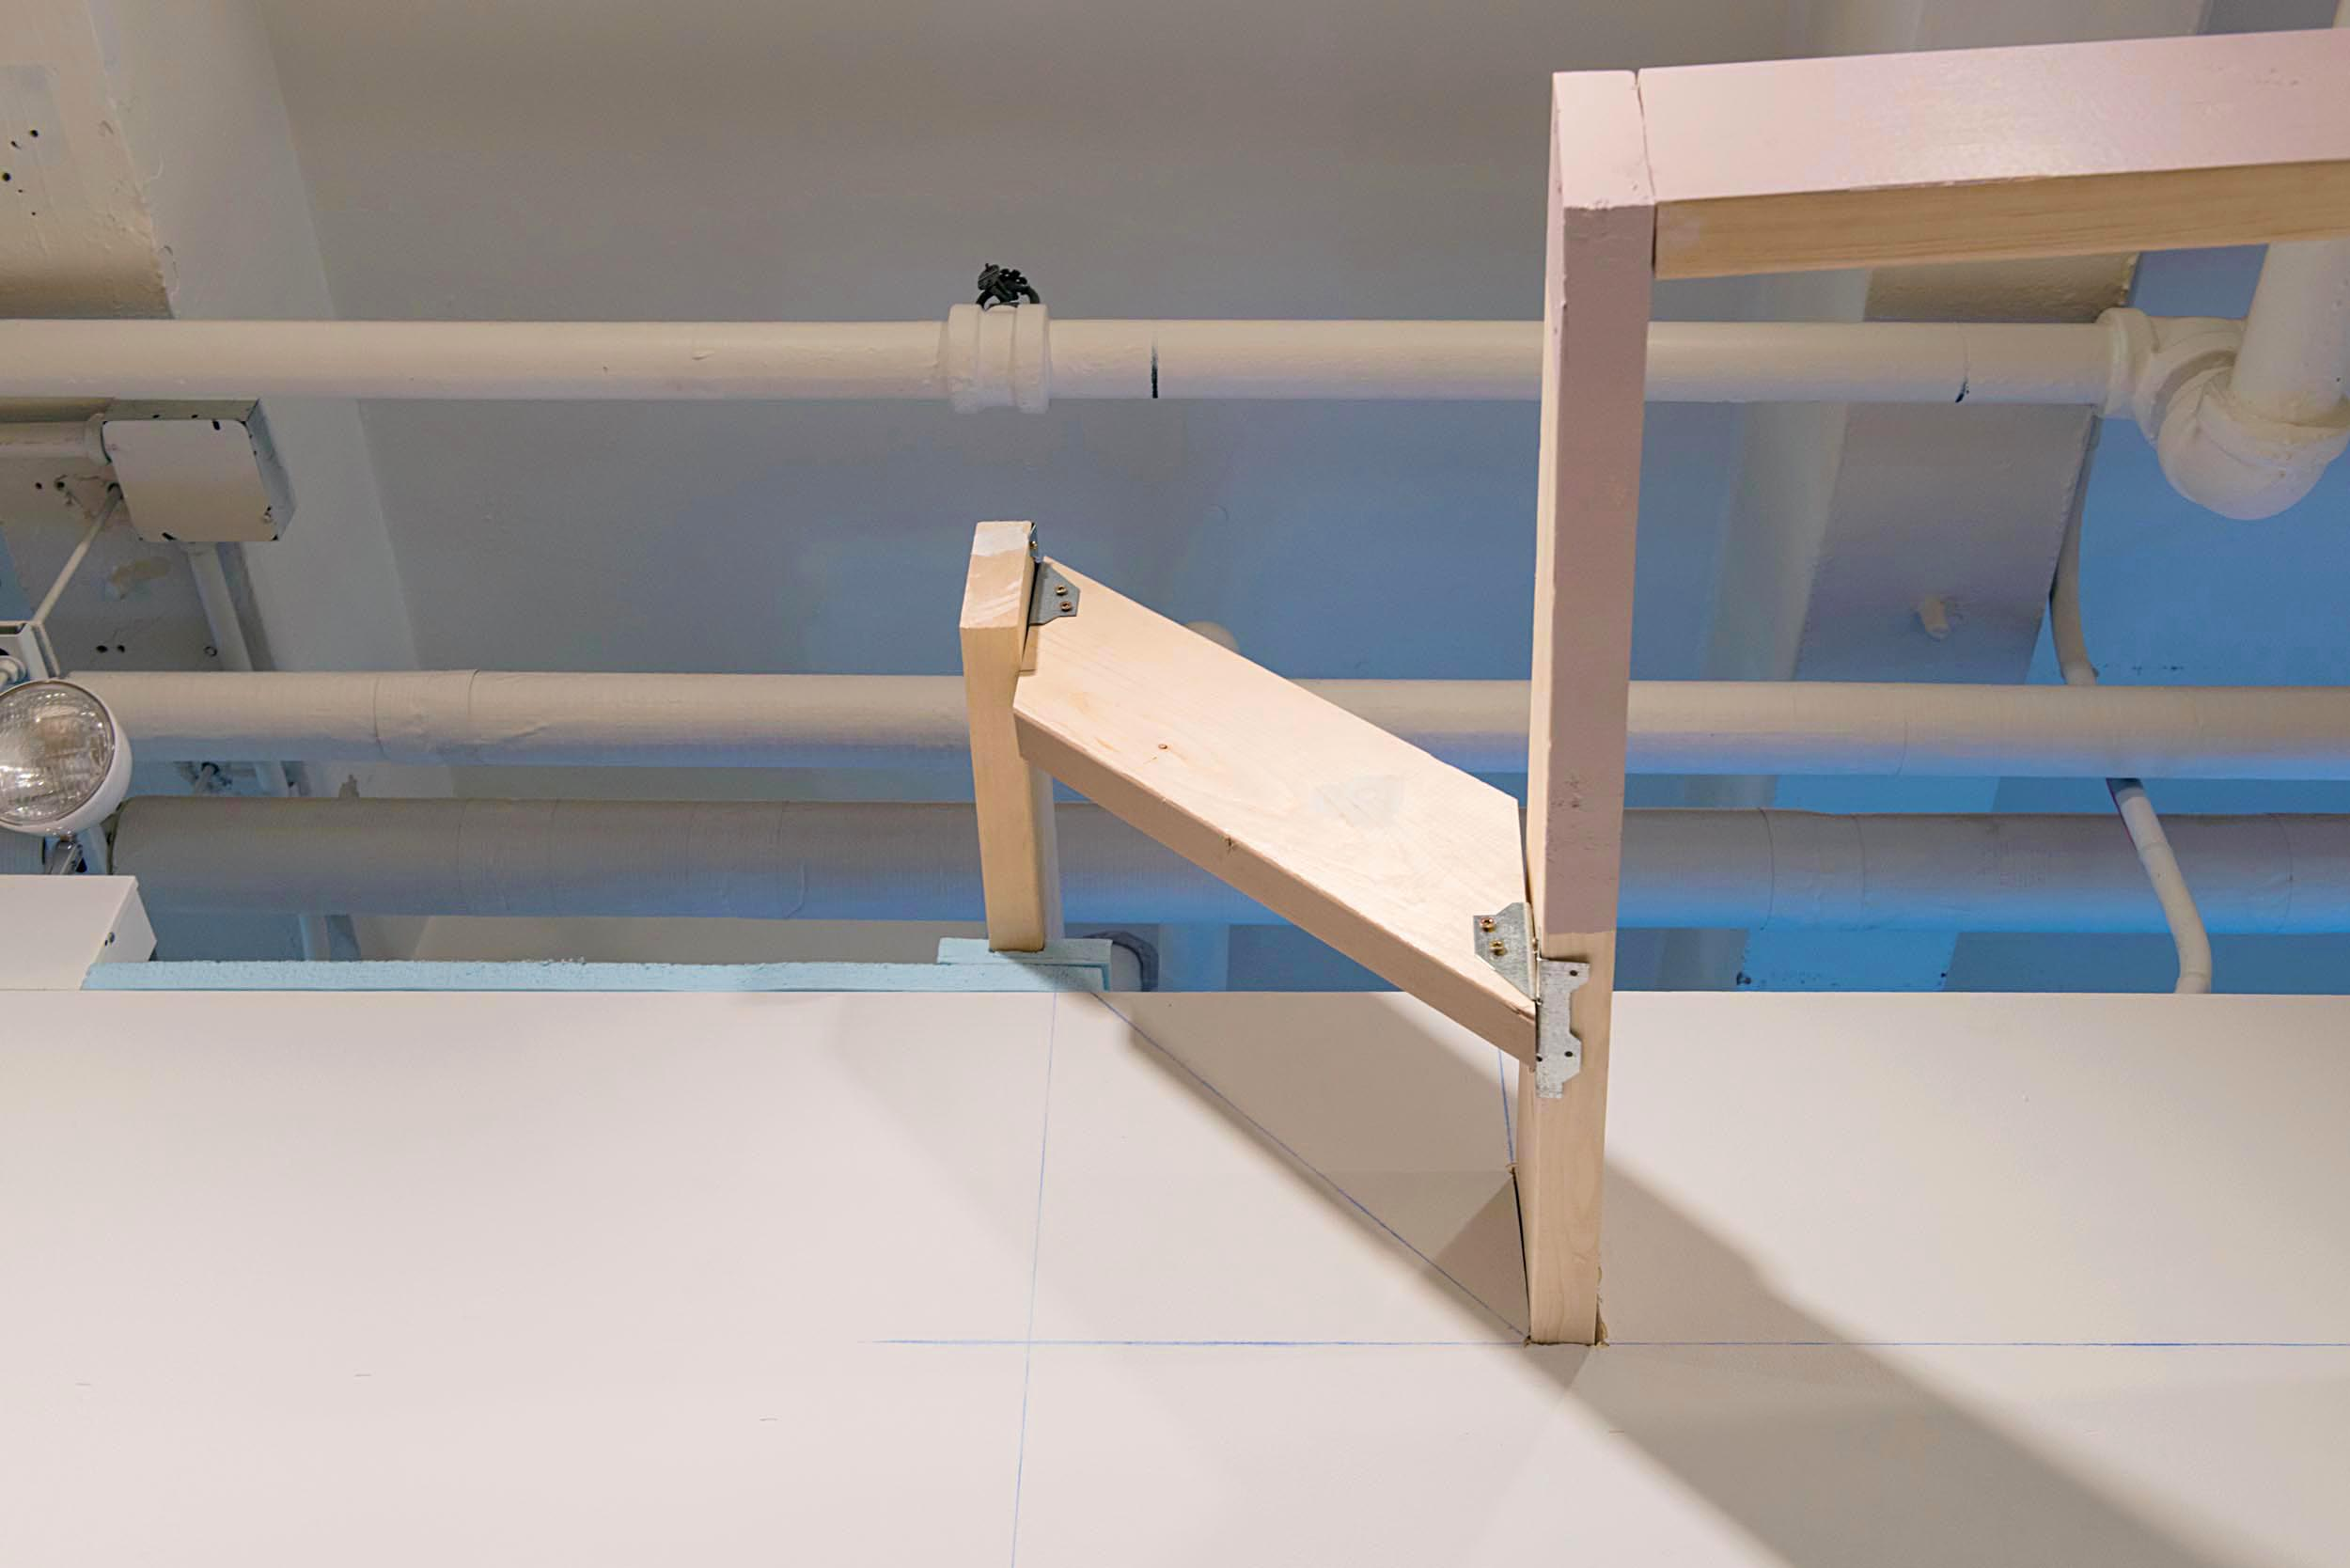 Isogloss  (lumber, deck boards, foam board insulation, rope, string, house paint, brackets, wooden peg, screws, ready patch, clamp lights, 2016)